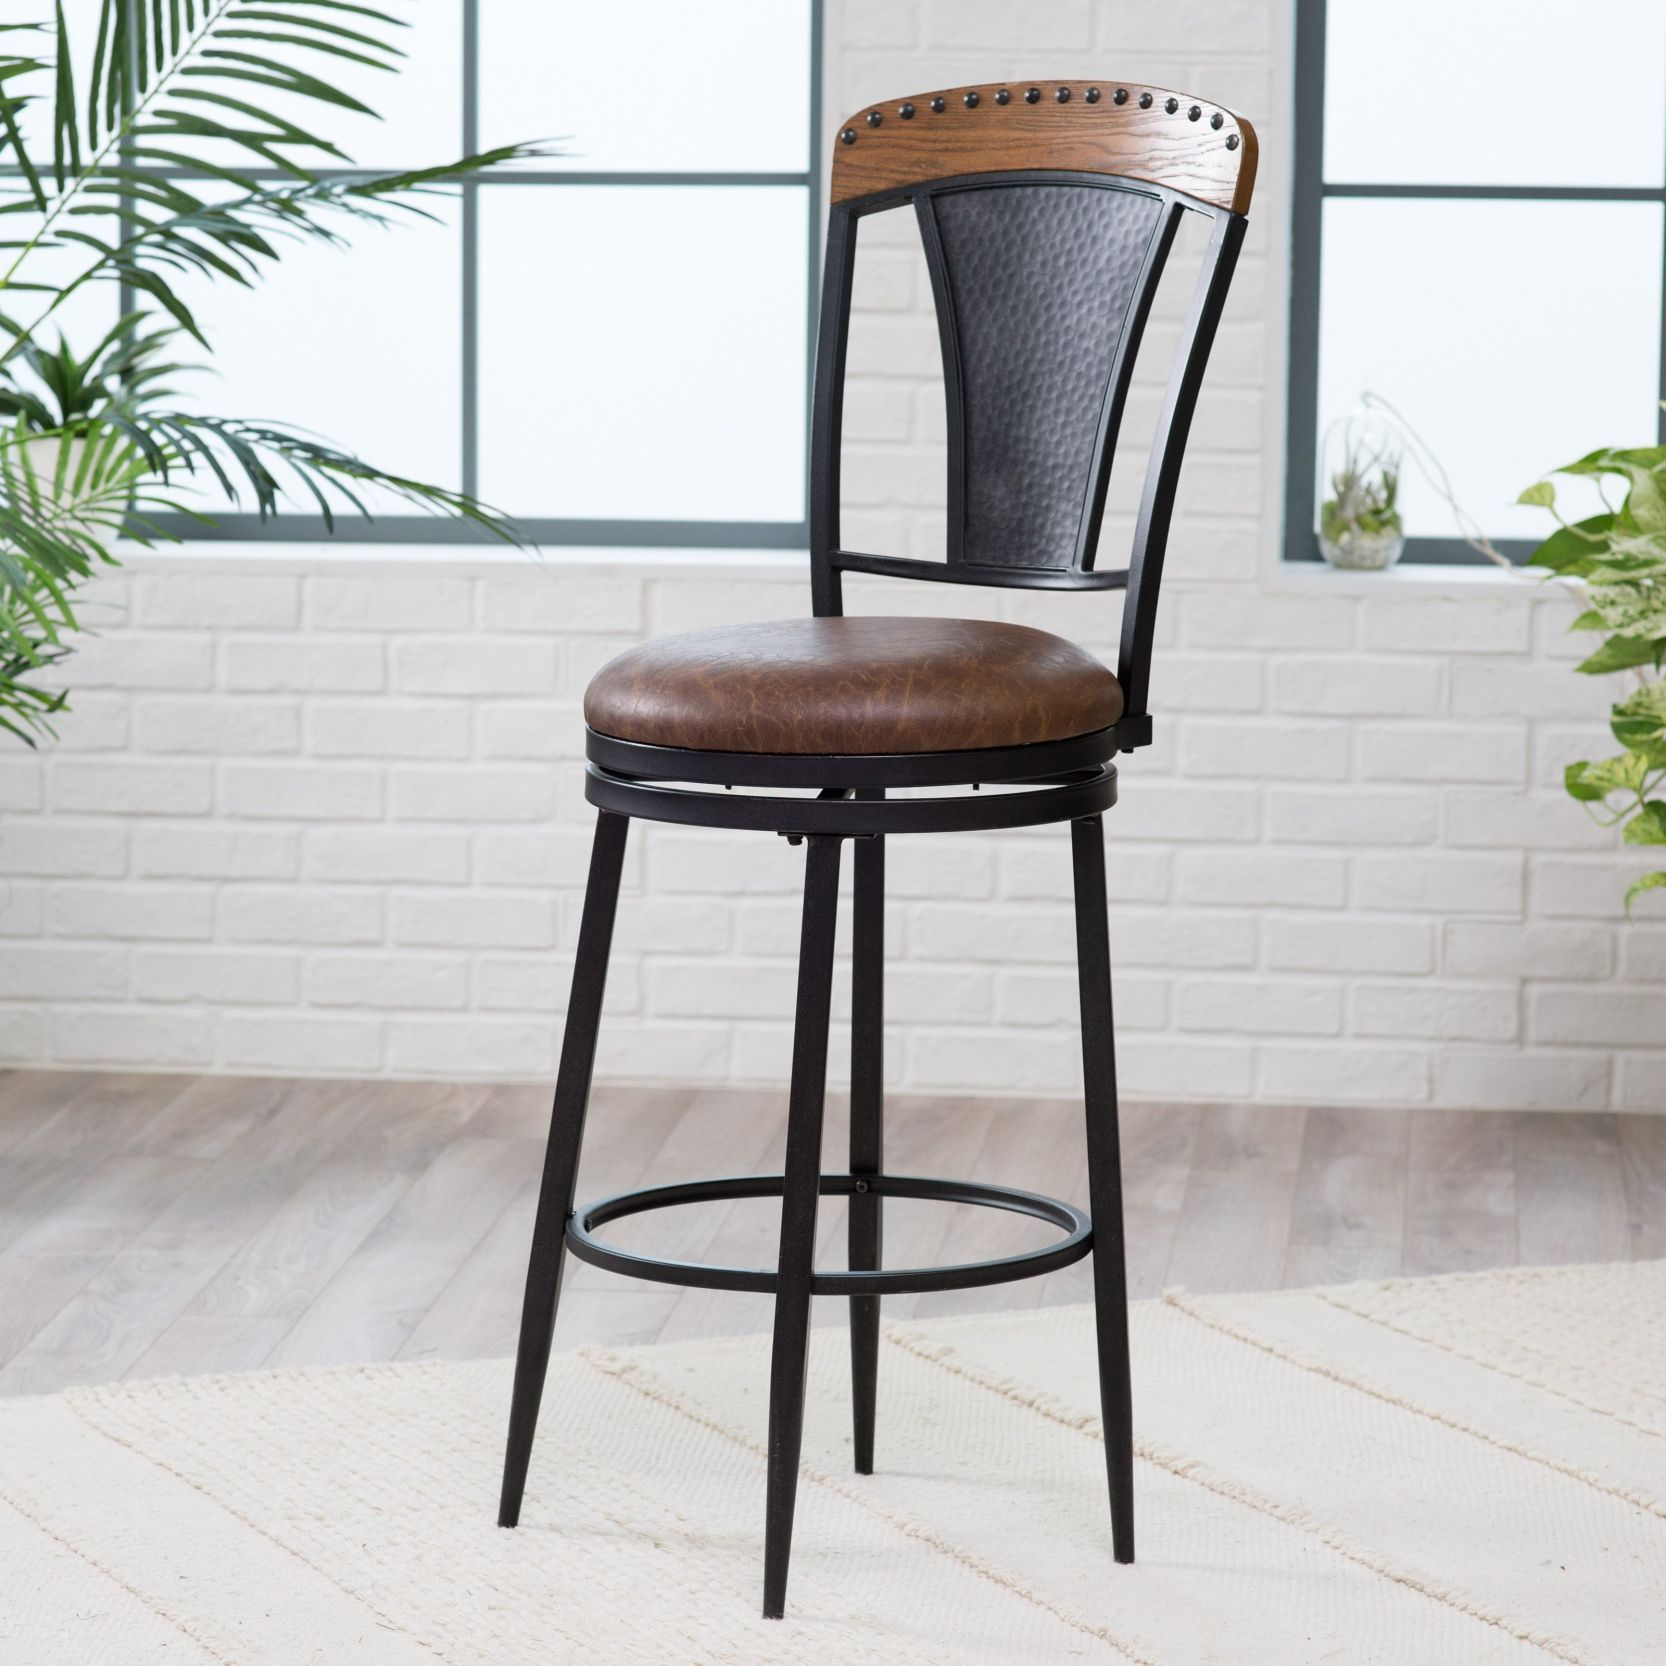 32 Inch Bar Stools If Your Round Wooden Bar Stool Seat Is